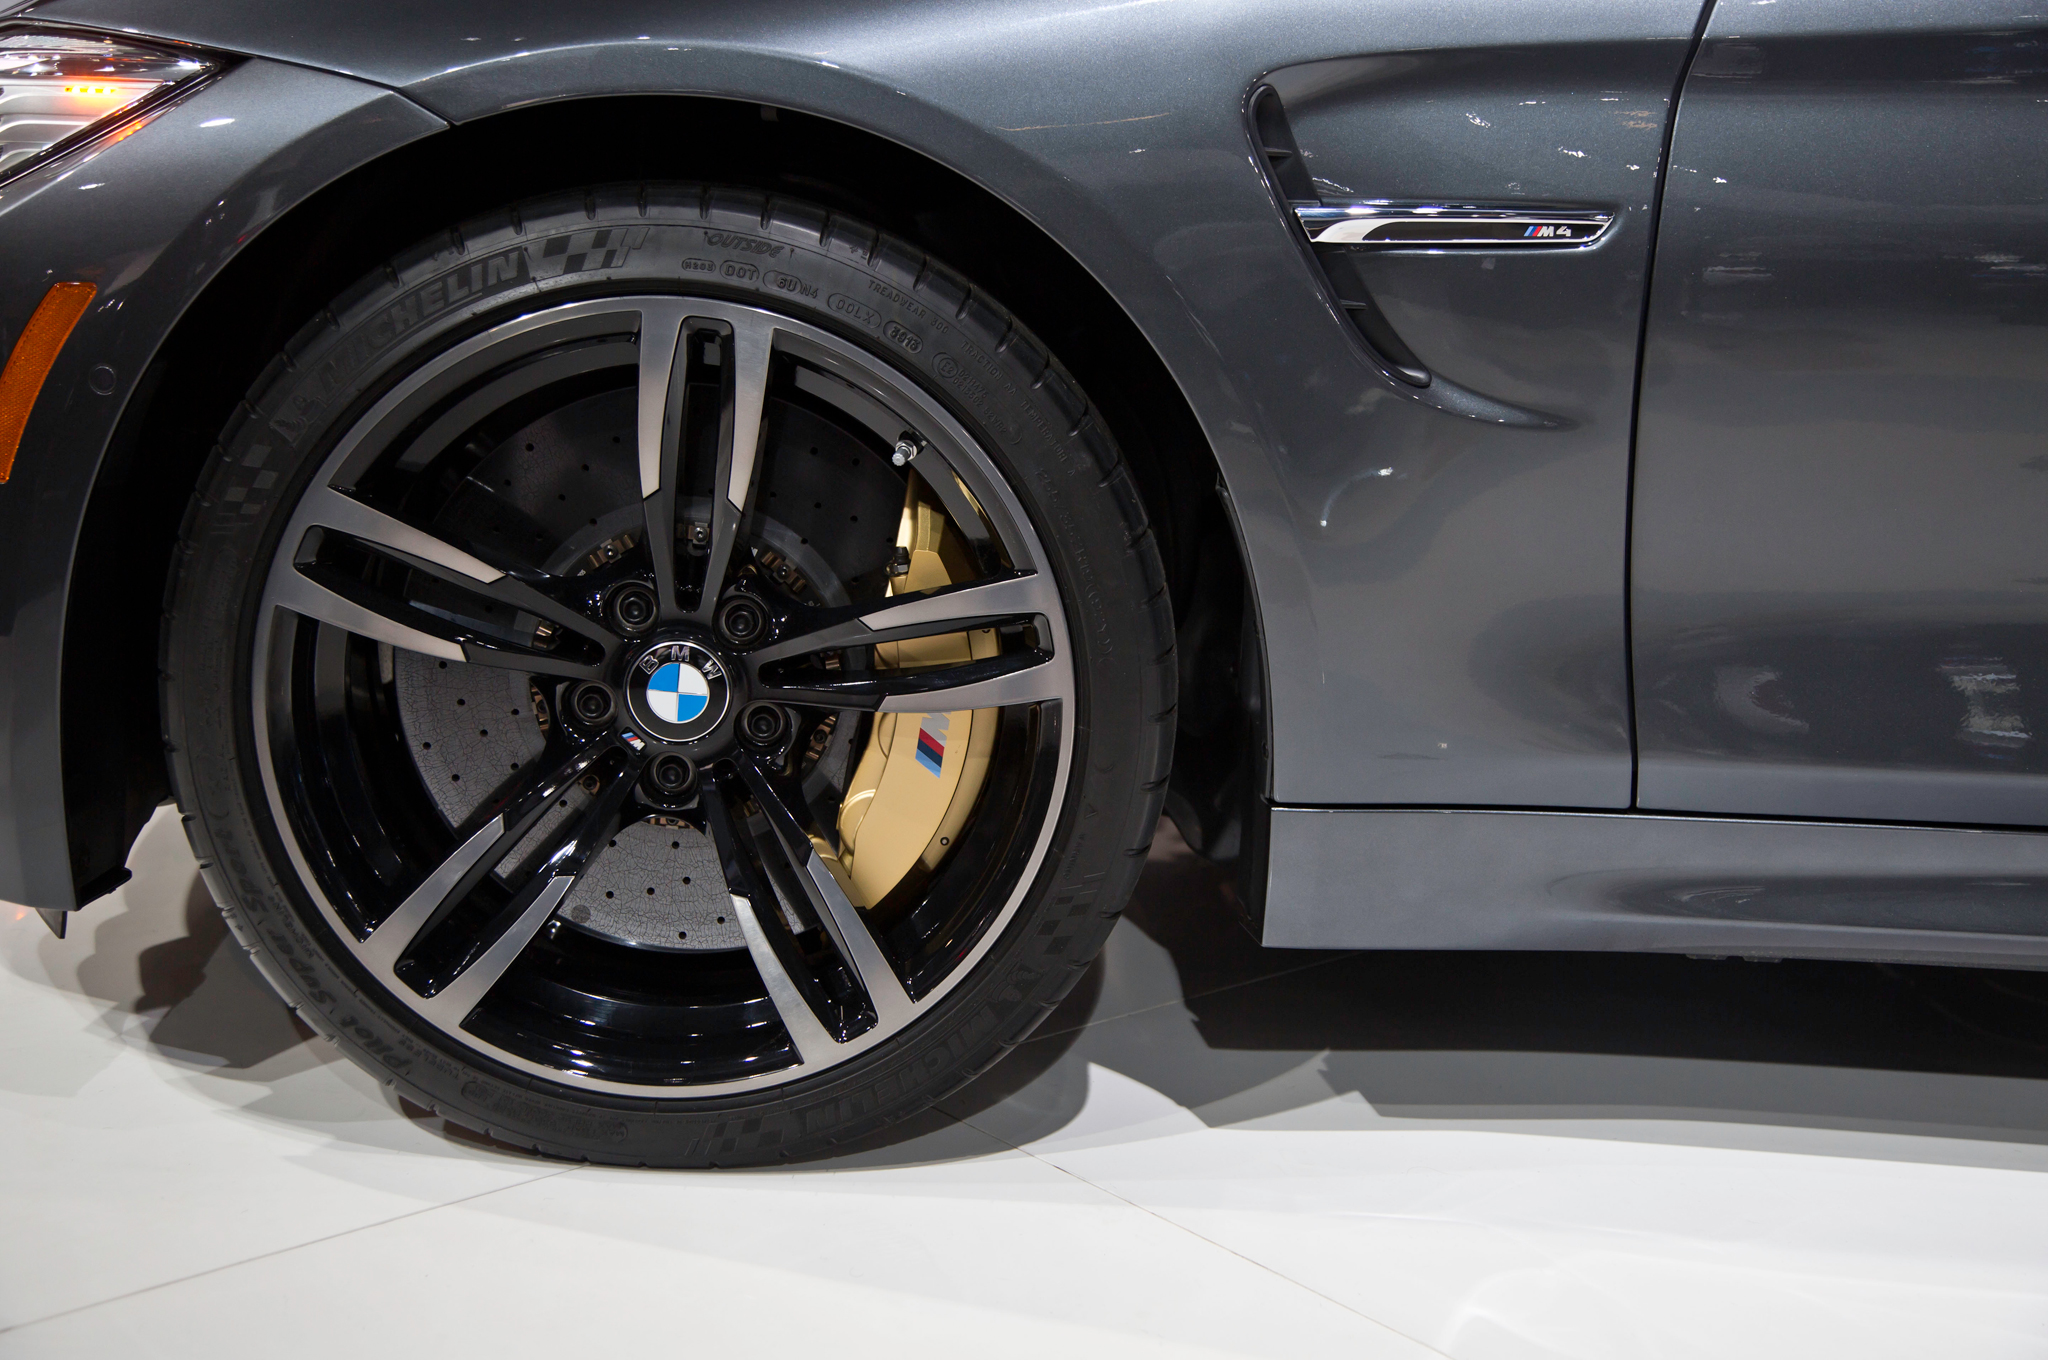 2015 Bmw M4 Convertible Wheels Details (View 6 of 50)